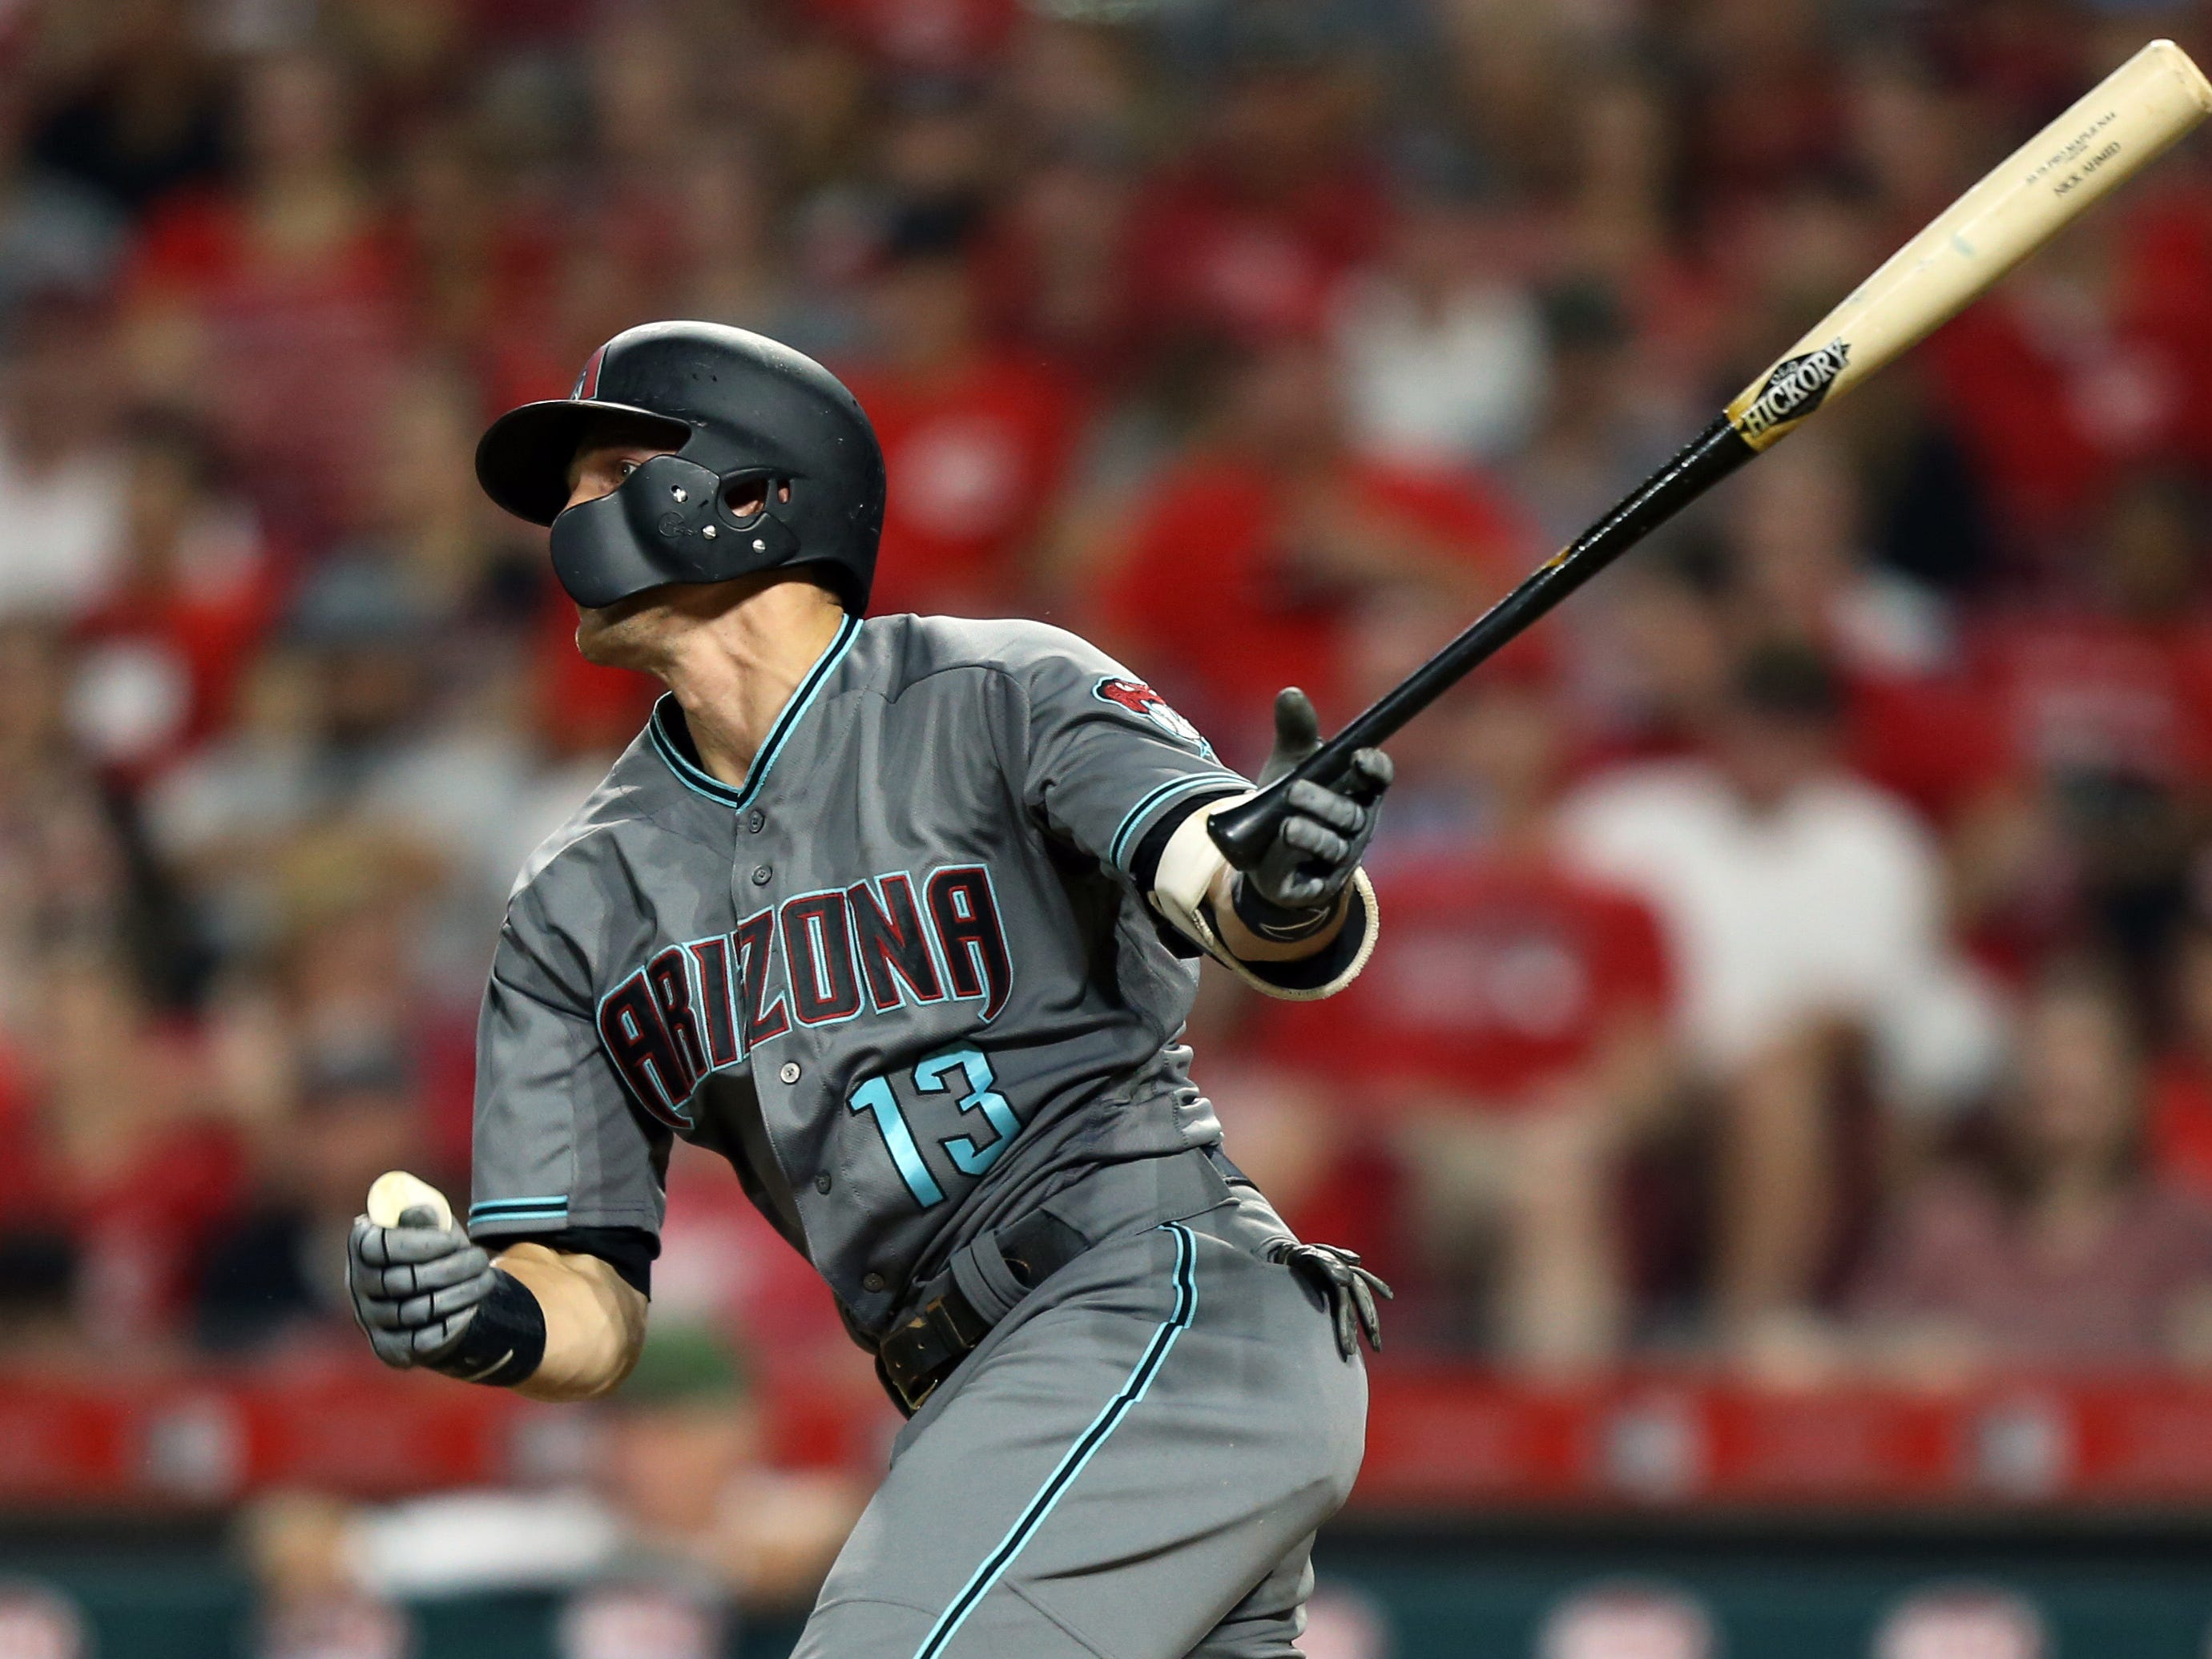 Aug 10, 2018; Cincinnati, OH, USA; Arizona Diamondbacks shortstop Nick Ahmed (13) singles against the Cincinnati Reds in the eighth inning at Great American Ball Park. Mandatory Credit: Aaron Doster-USA TODAY Sports